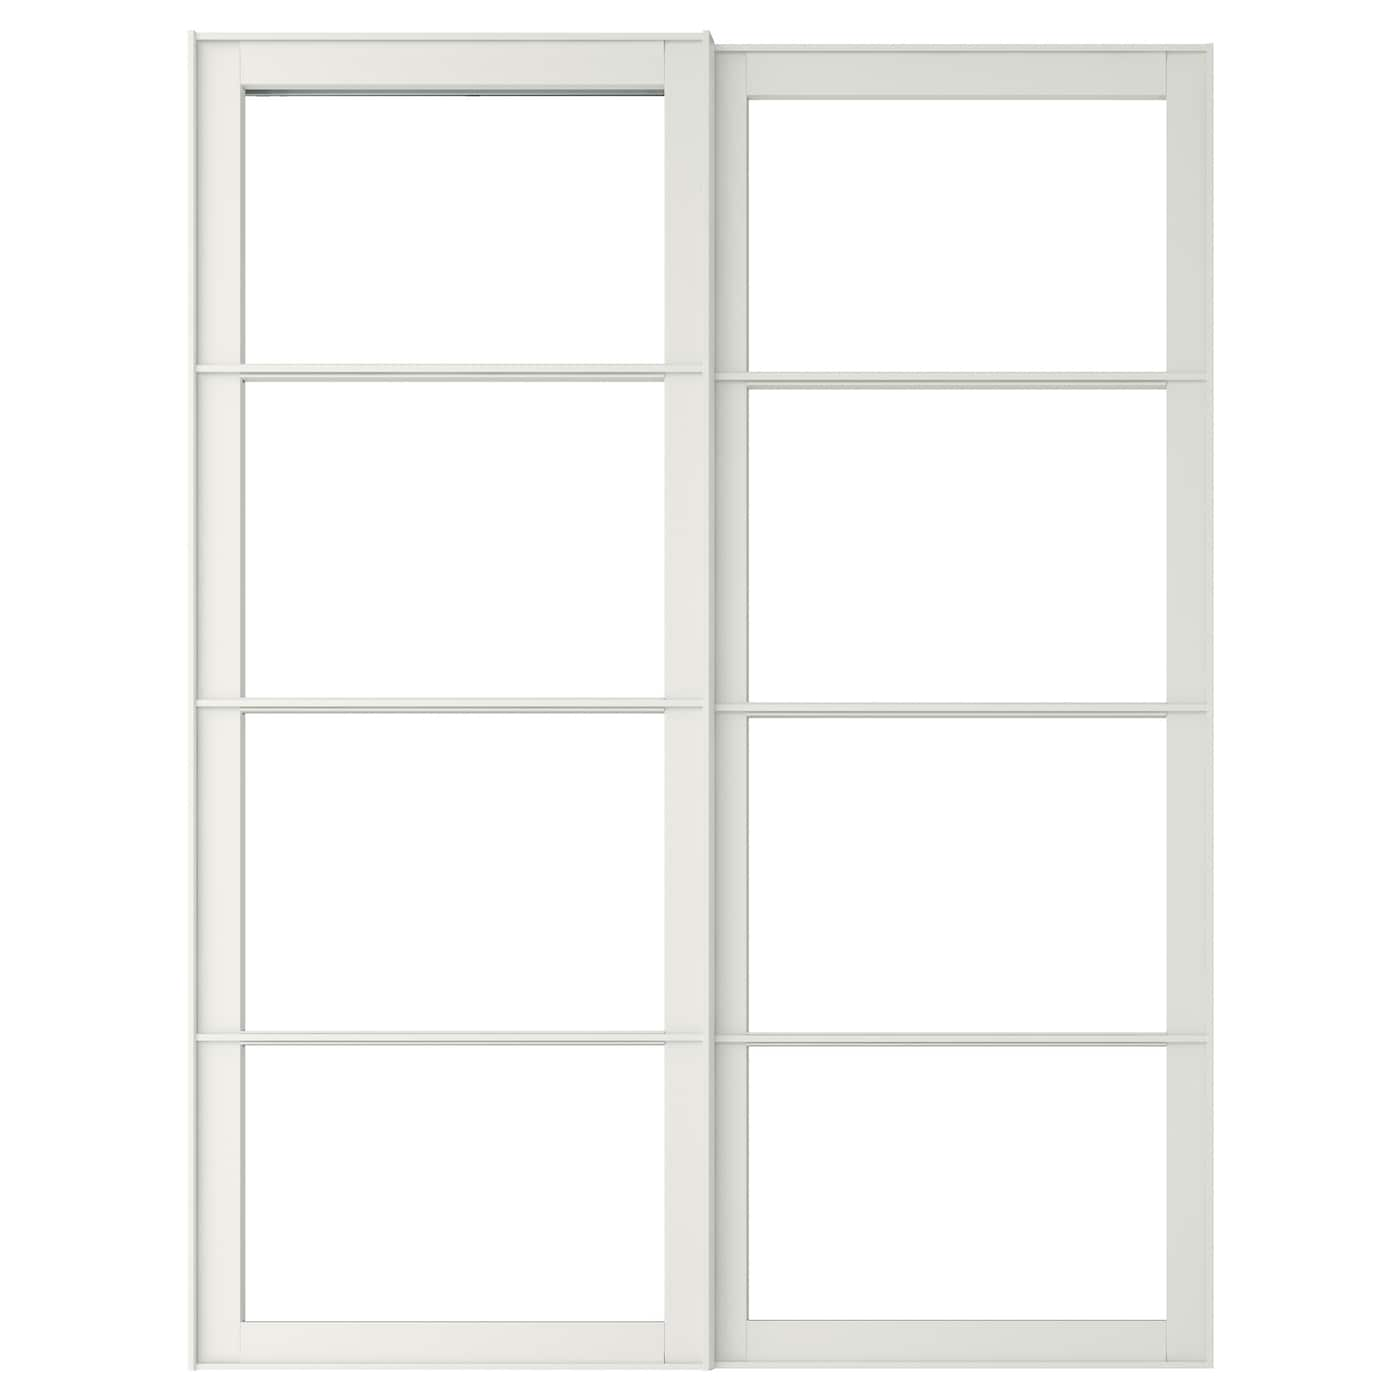 pax cadre porte coulissante 2pces blanc 150 x 236 cm ikea. Black Bedroom Furniture Sets. Home Design Ideas